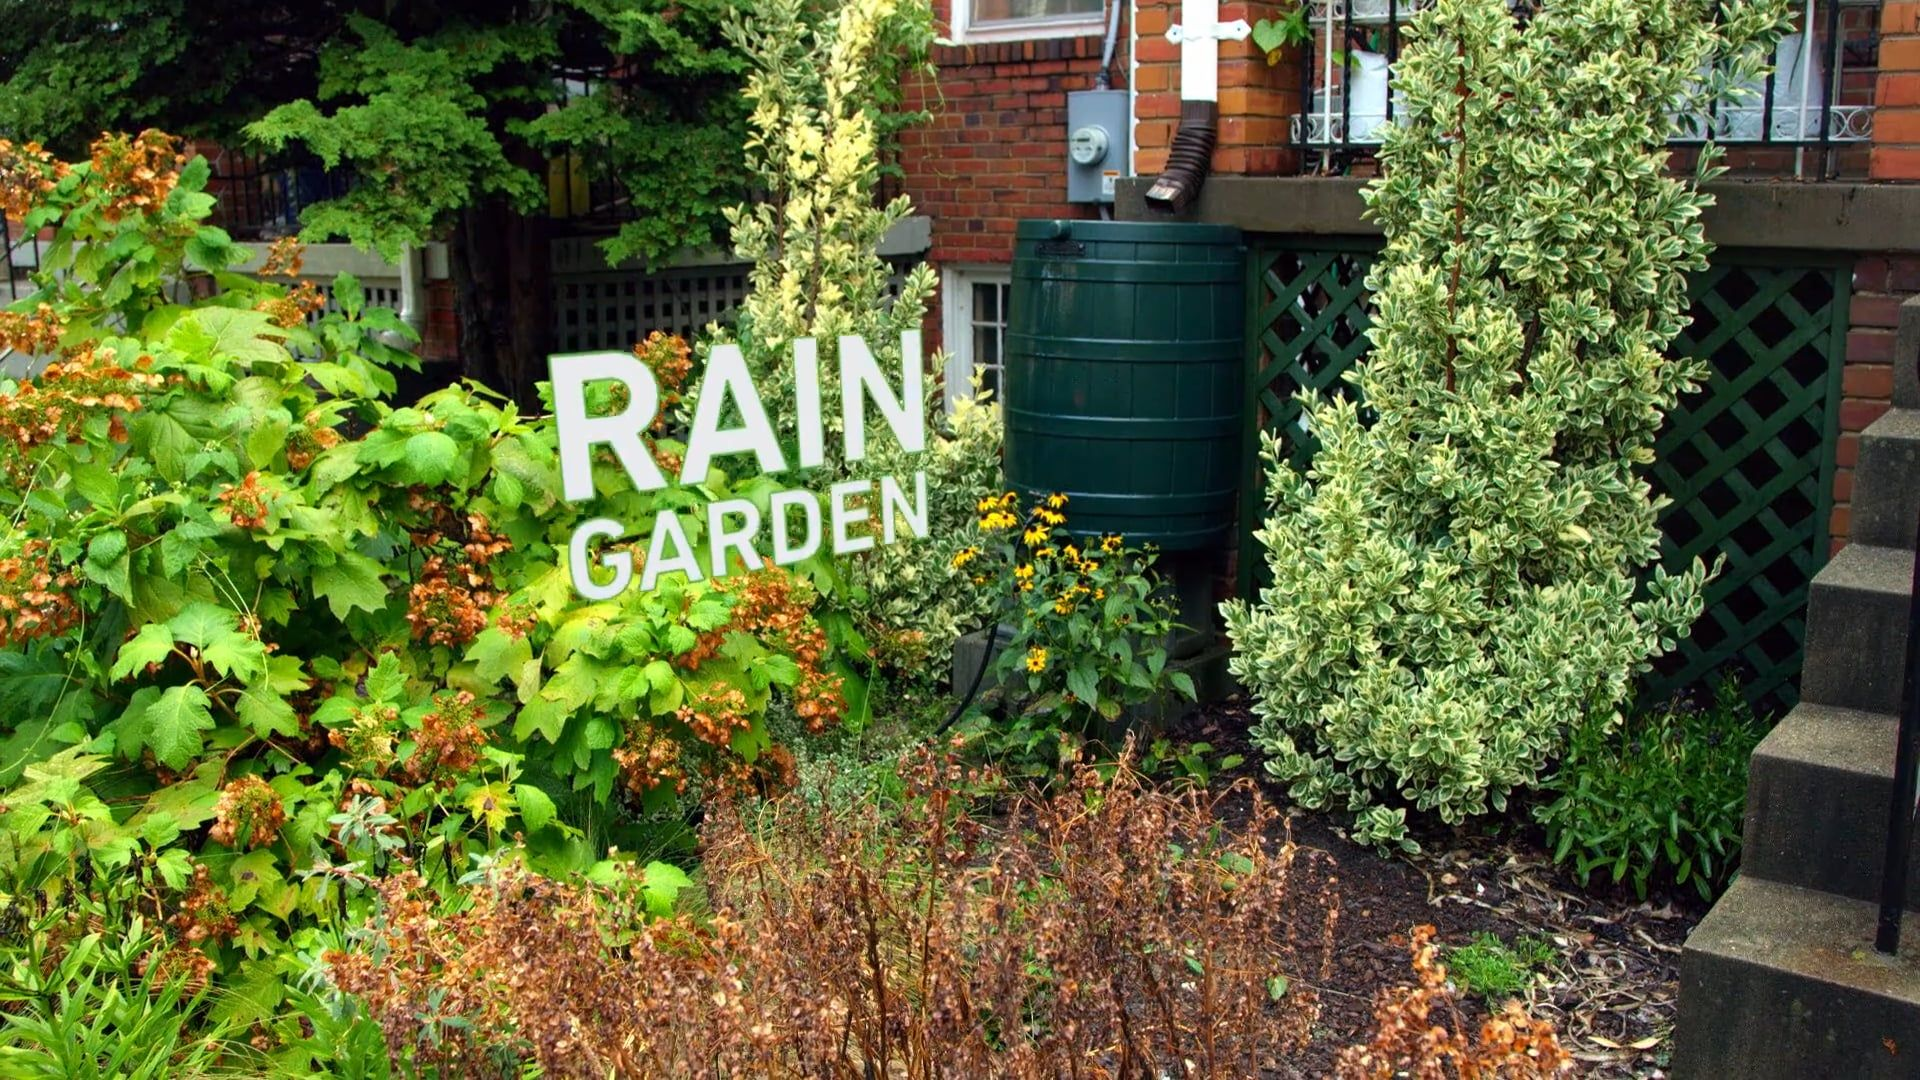 Design and Build a Rain Garden for Your School or Community | K-12 ...